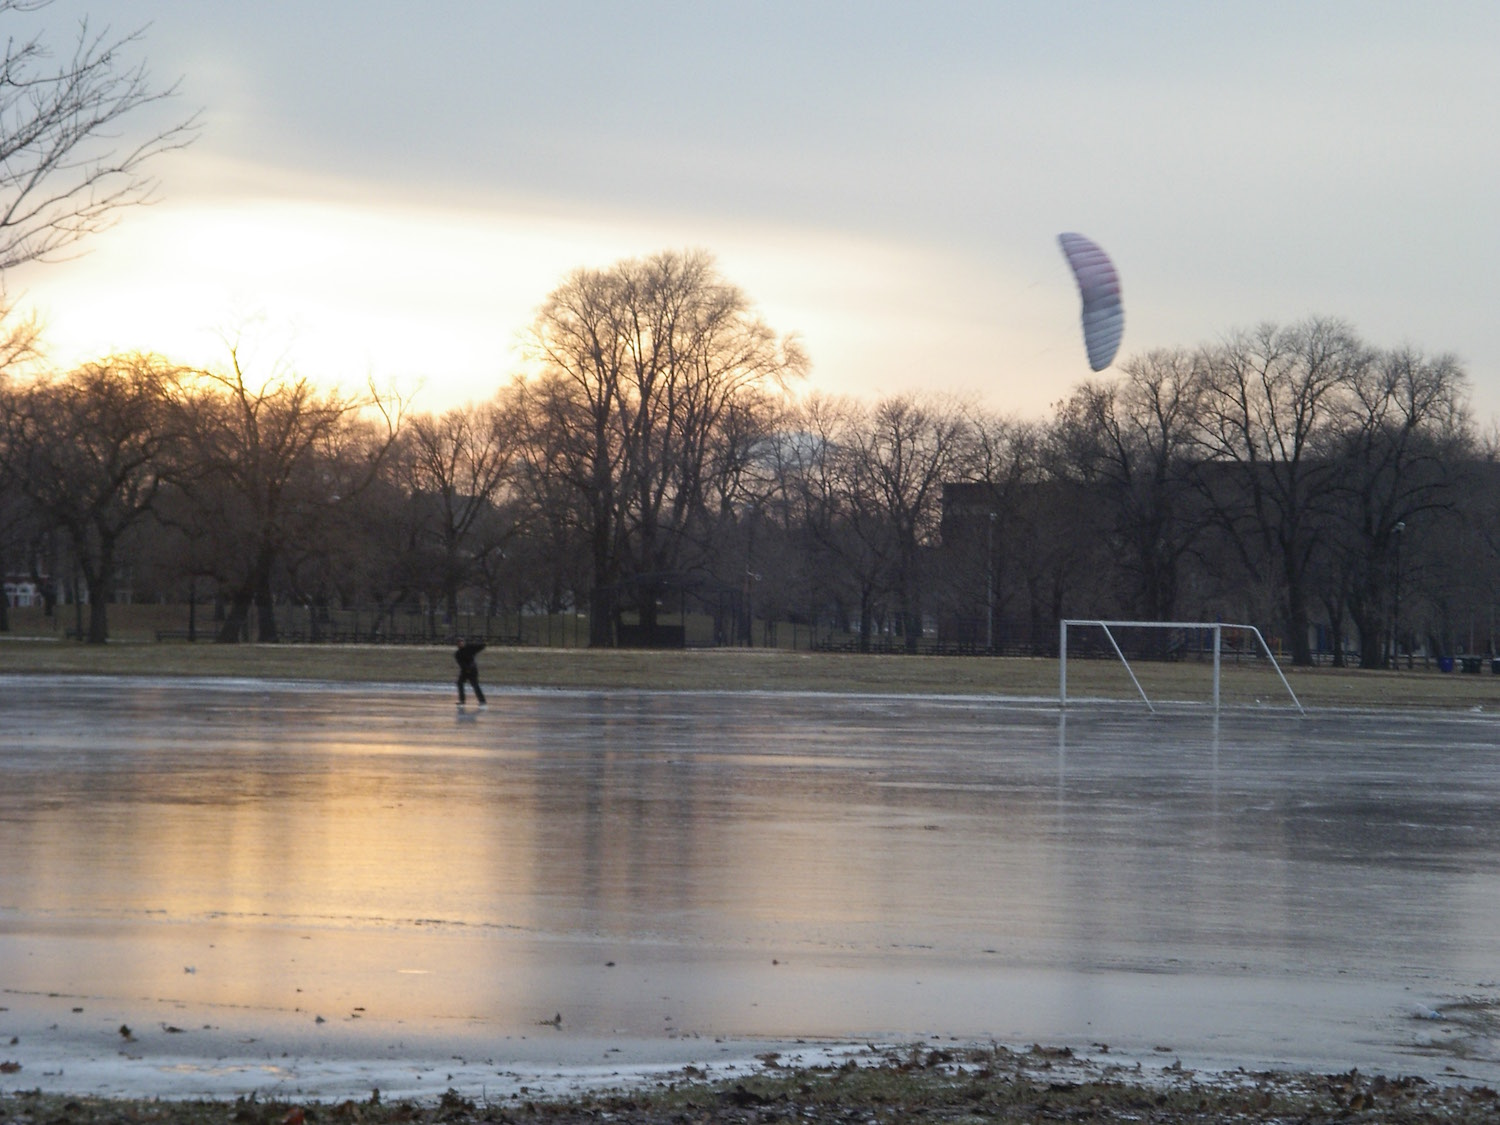 I found ice in Douglas Park on Chicago's west side! The wind was right, all I needed was my ice and skates. Always be ready to seize the wind!